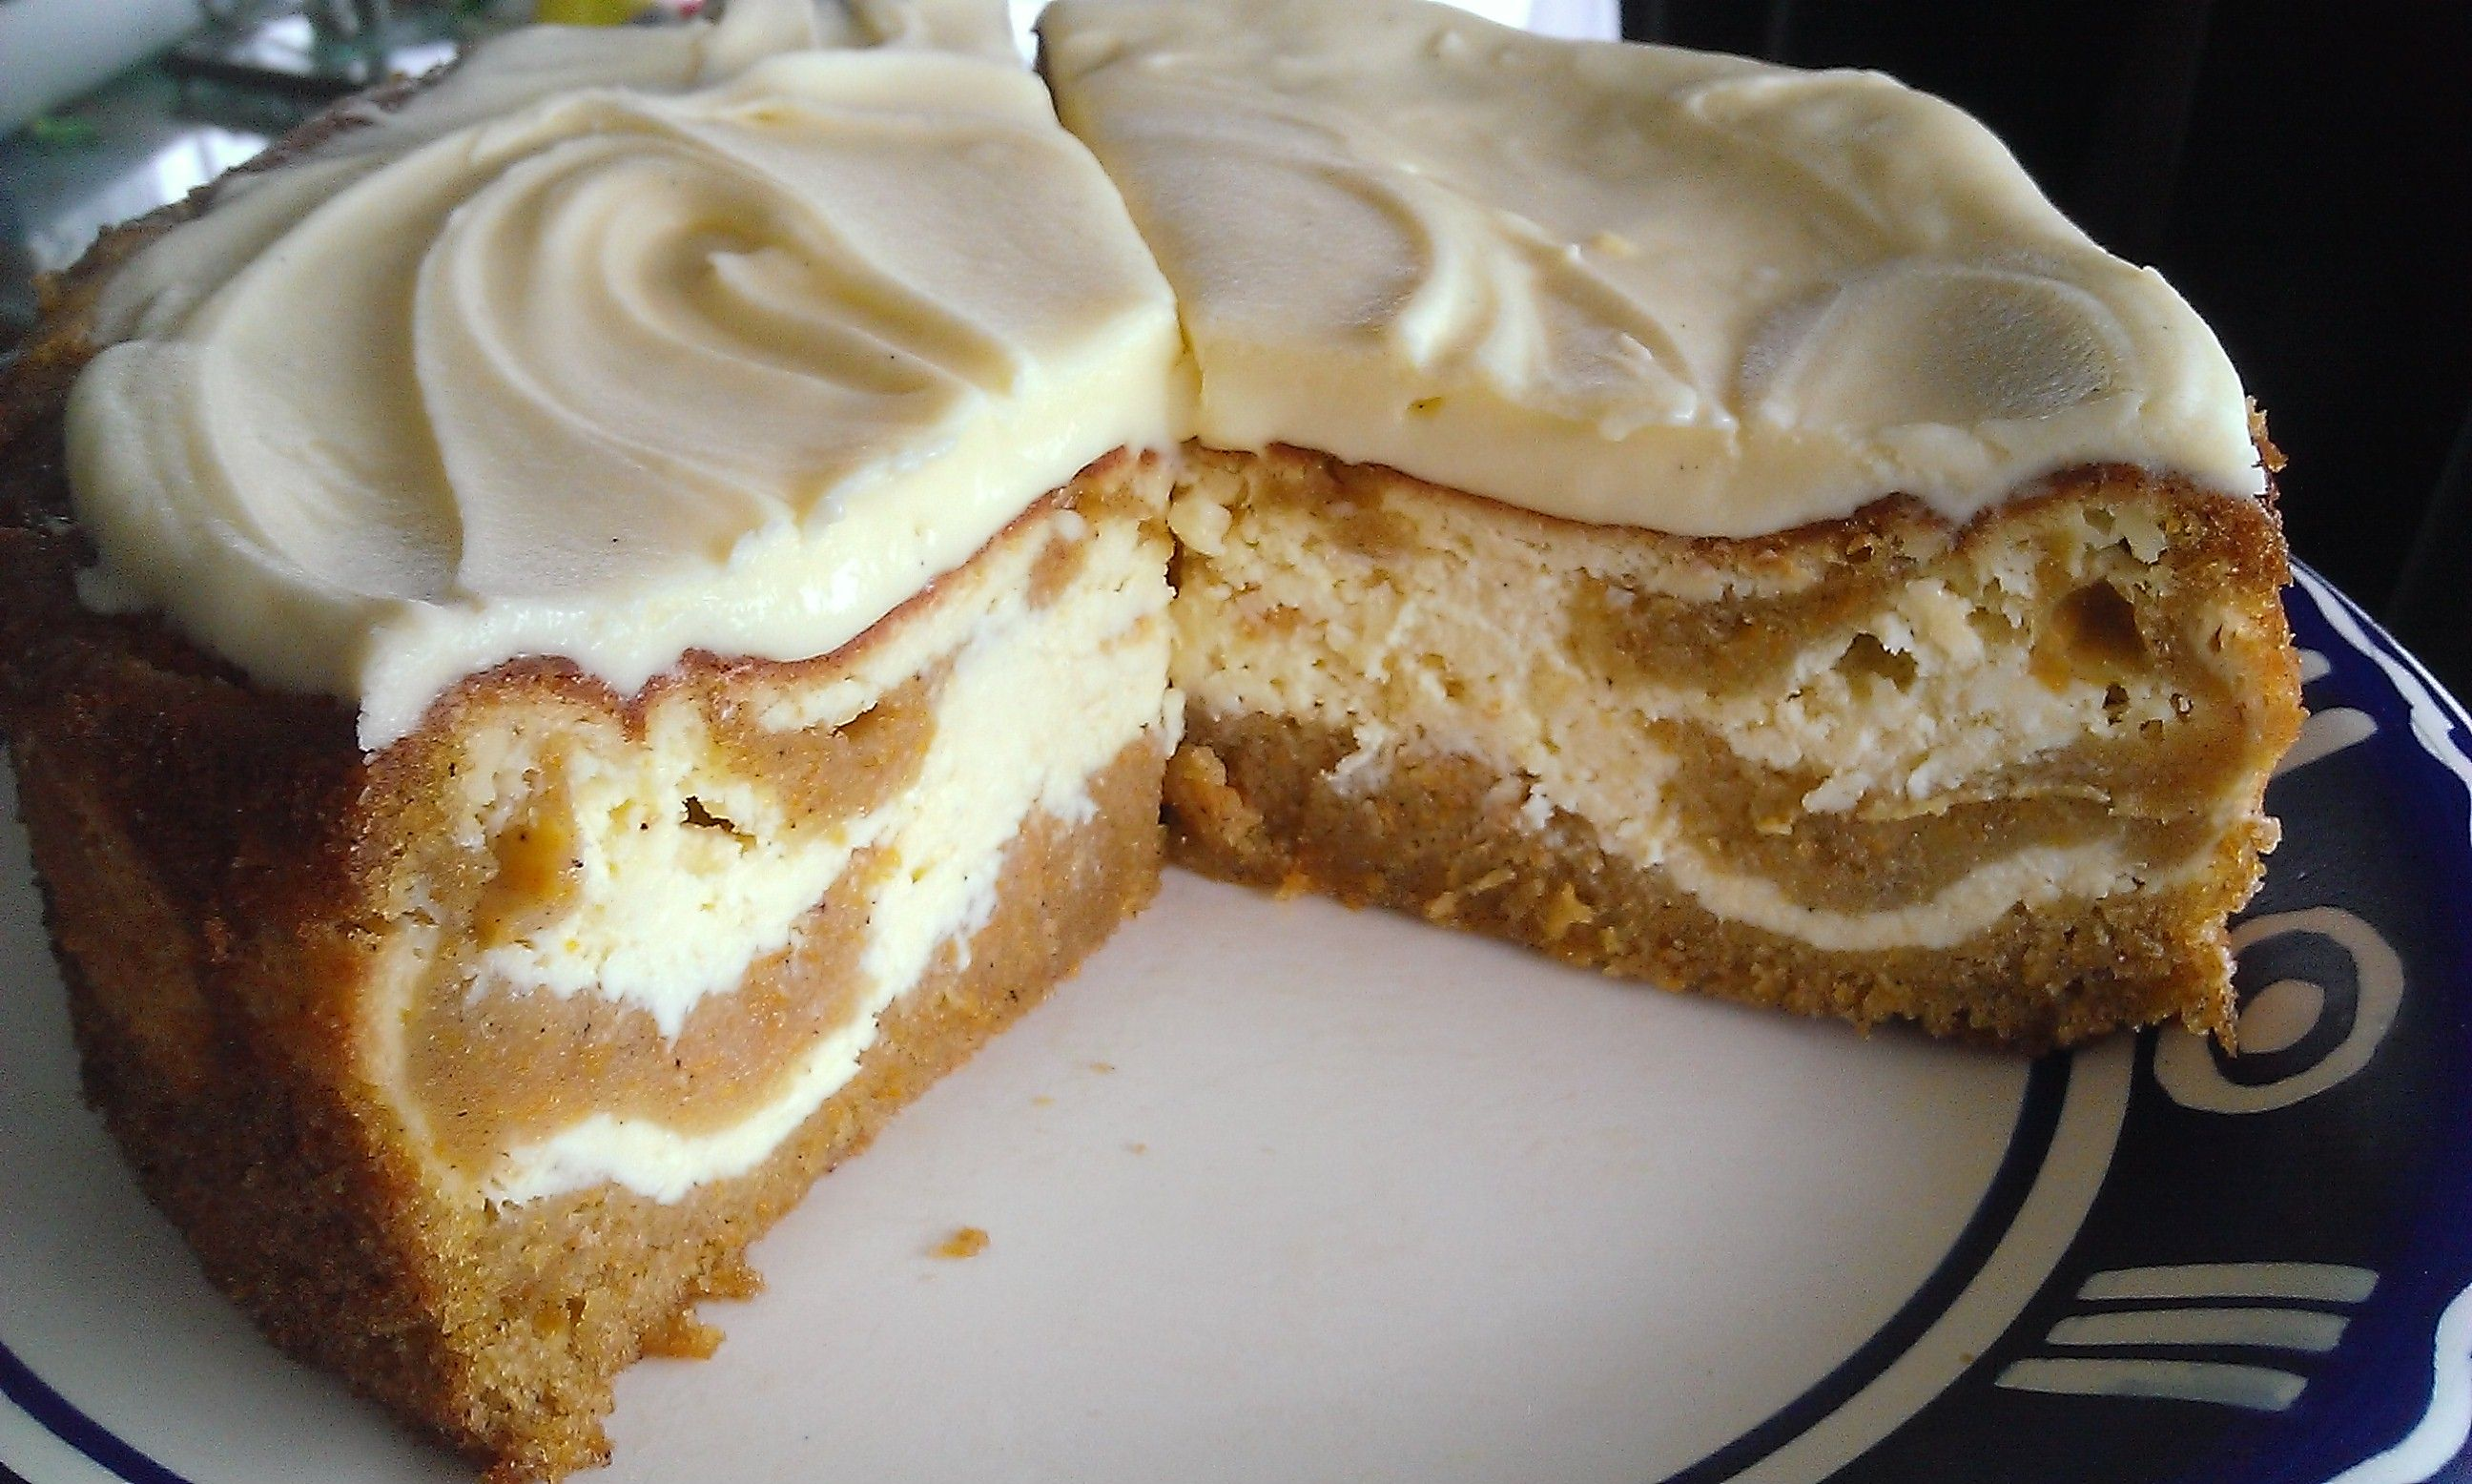 Carrot Cake Cheesecake - absolutely delicious and a great alternative to a biscuit base. Extremely easy to make.